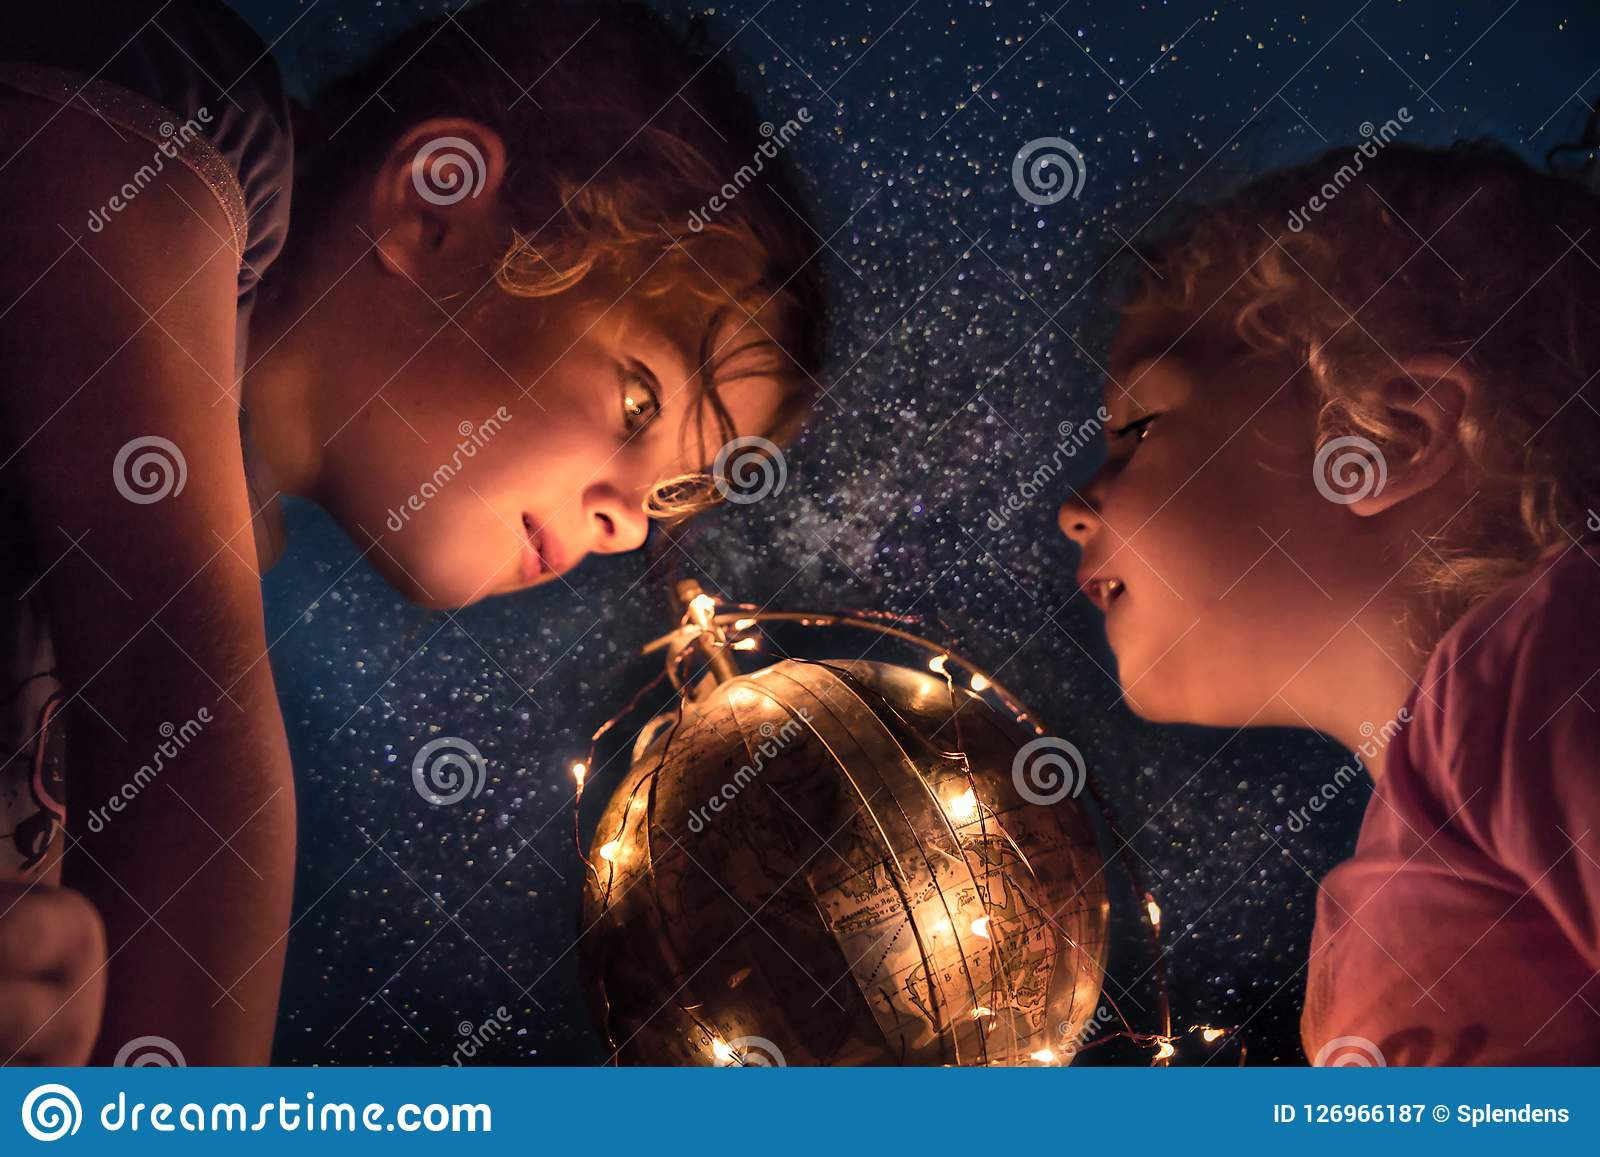 Children exploring night sky with space stars and earth planet concept astronomy and discovery